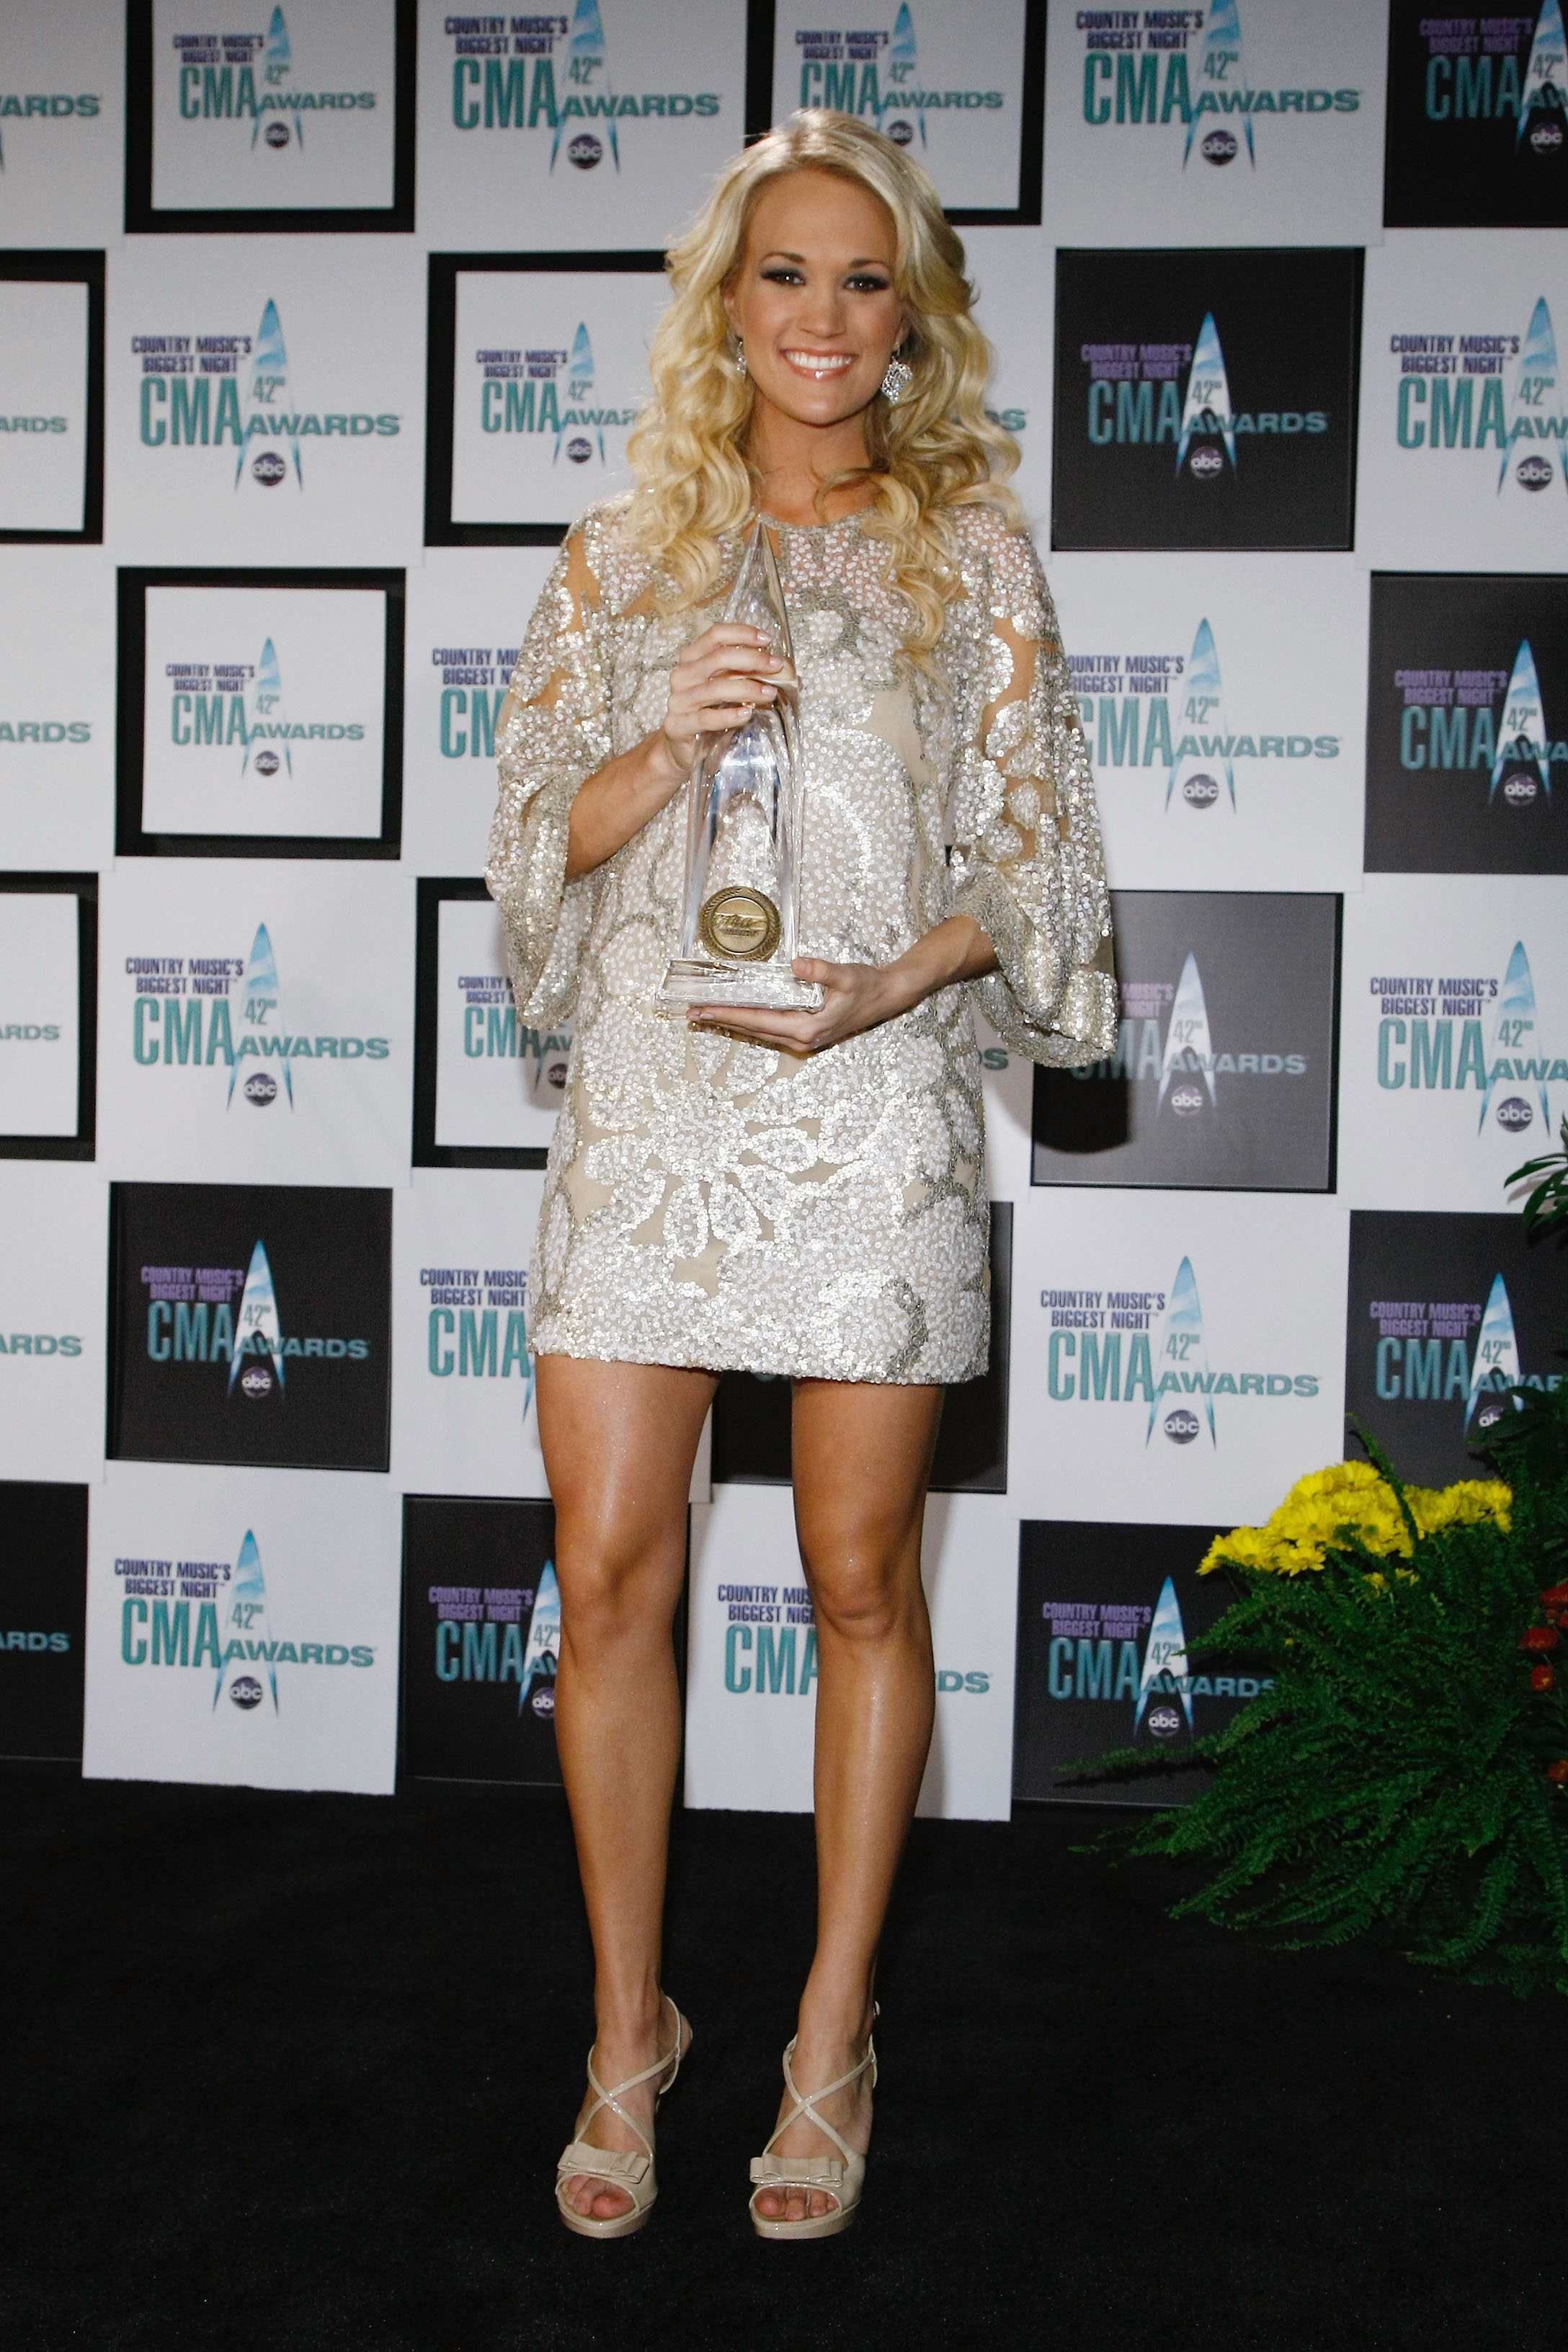 Carrie Underwood at the 42nd Annual CMA Awards on November 12, 2008; Photo by Jemal Countess/WireImage